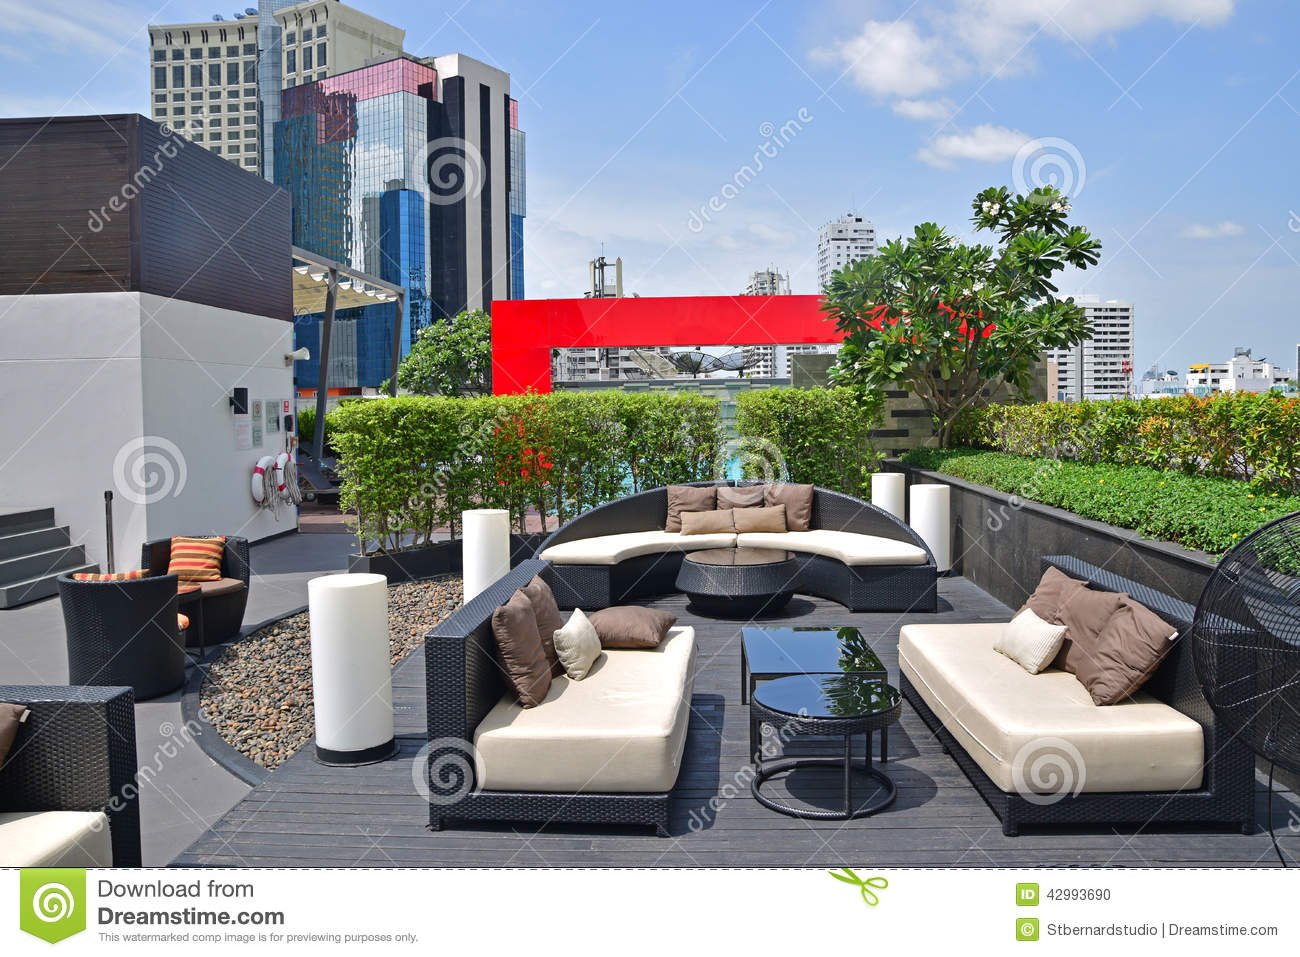 Beautiful Rooftop Settings For Relaxation And Recreational